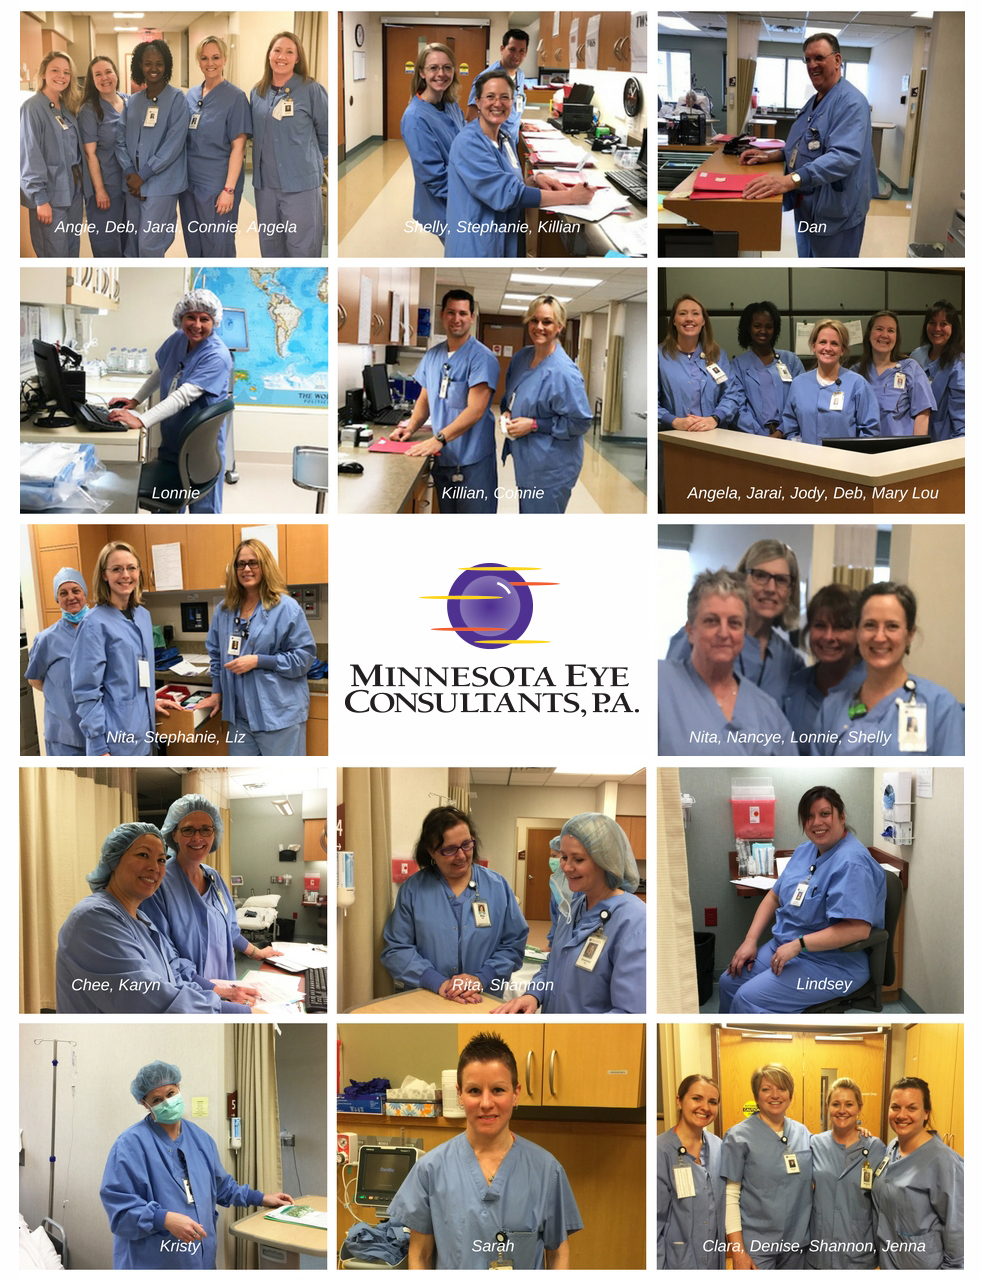 Nurses Collage 2017